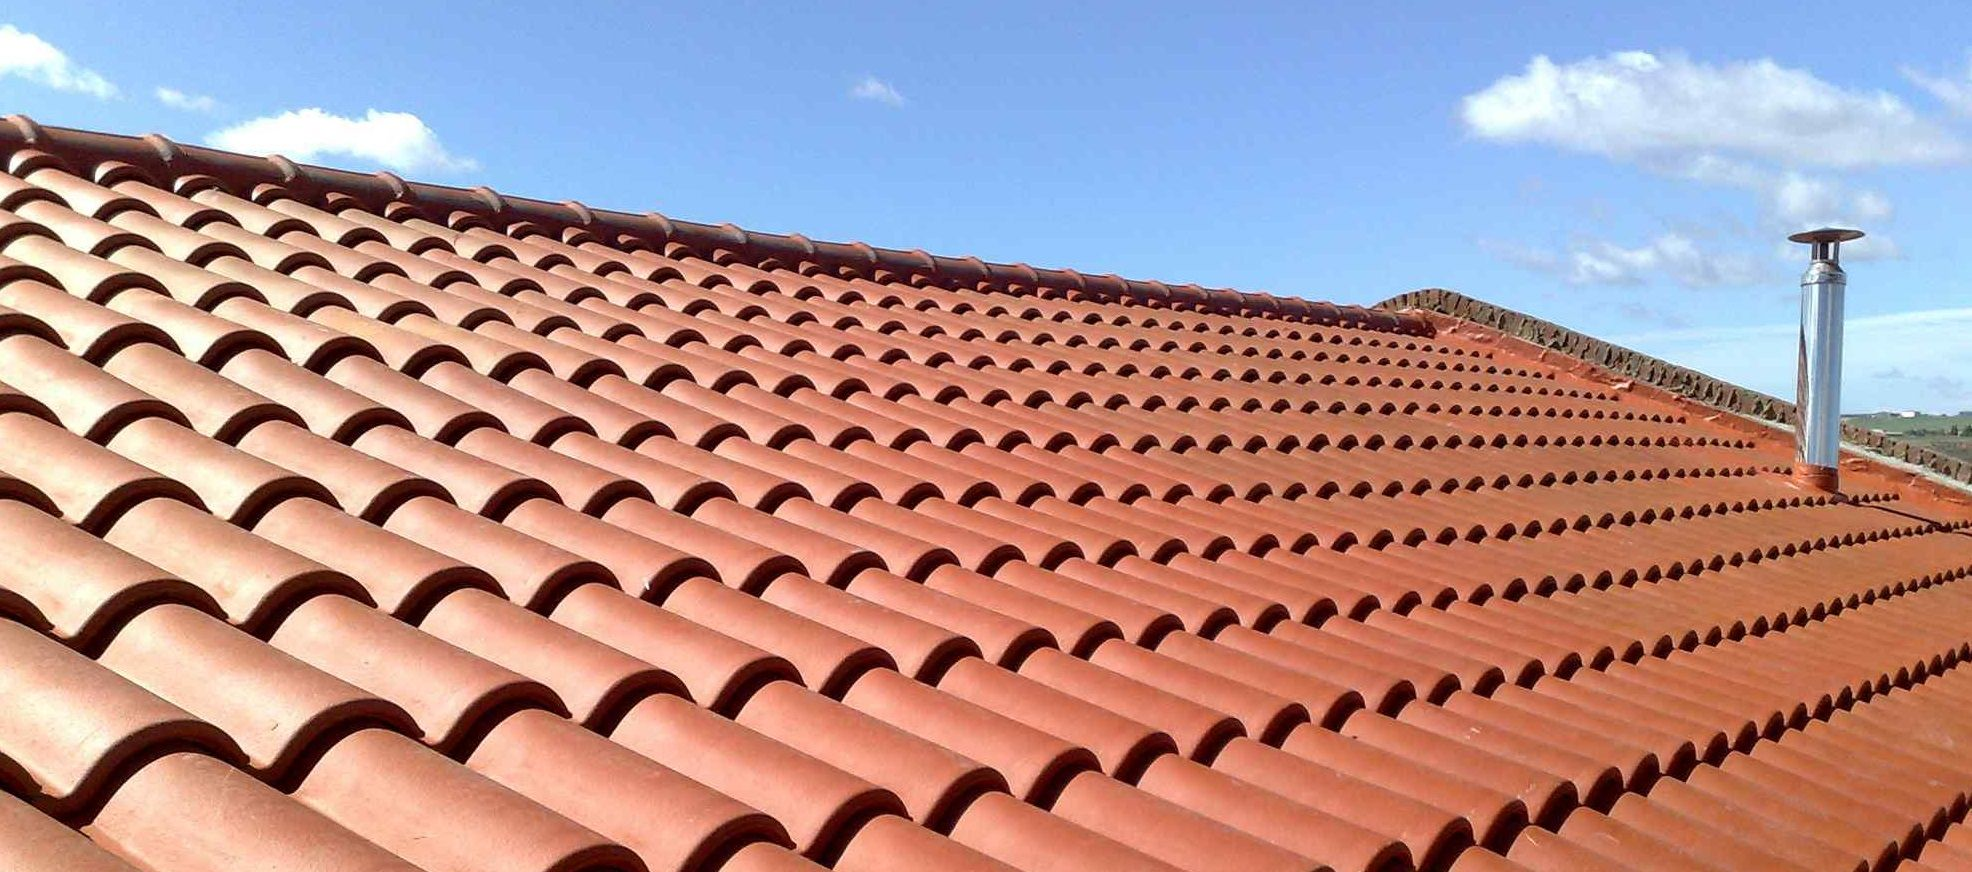 Tile Supplier And Contractor Malaysia Roofer Roofing Flat Roof